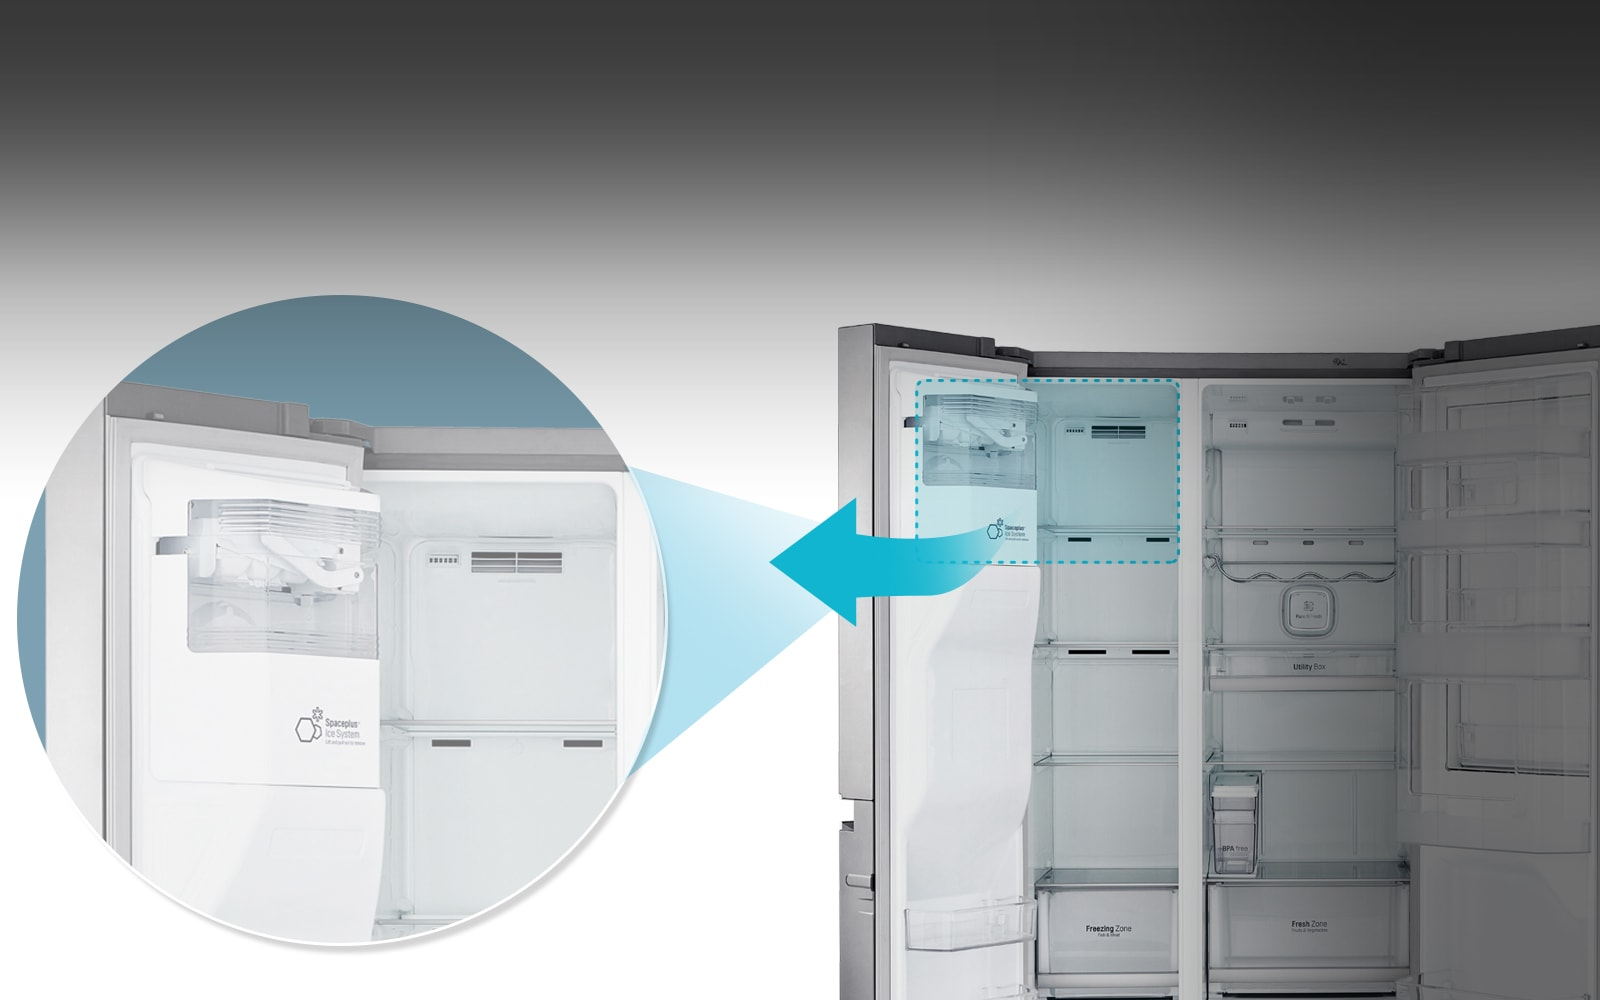 LG Fridges - Slim SpacePlus™ Ice System